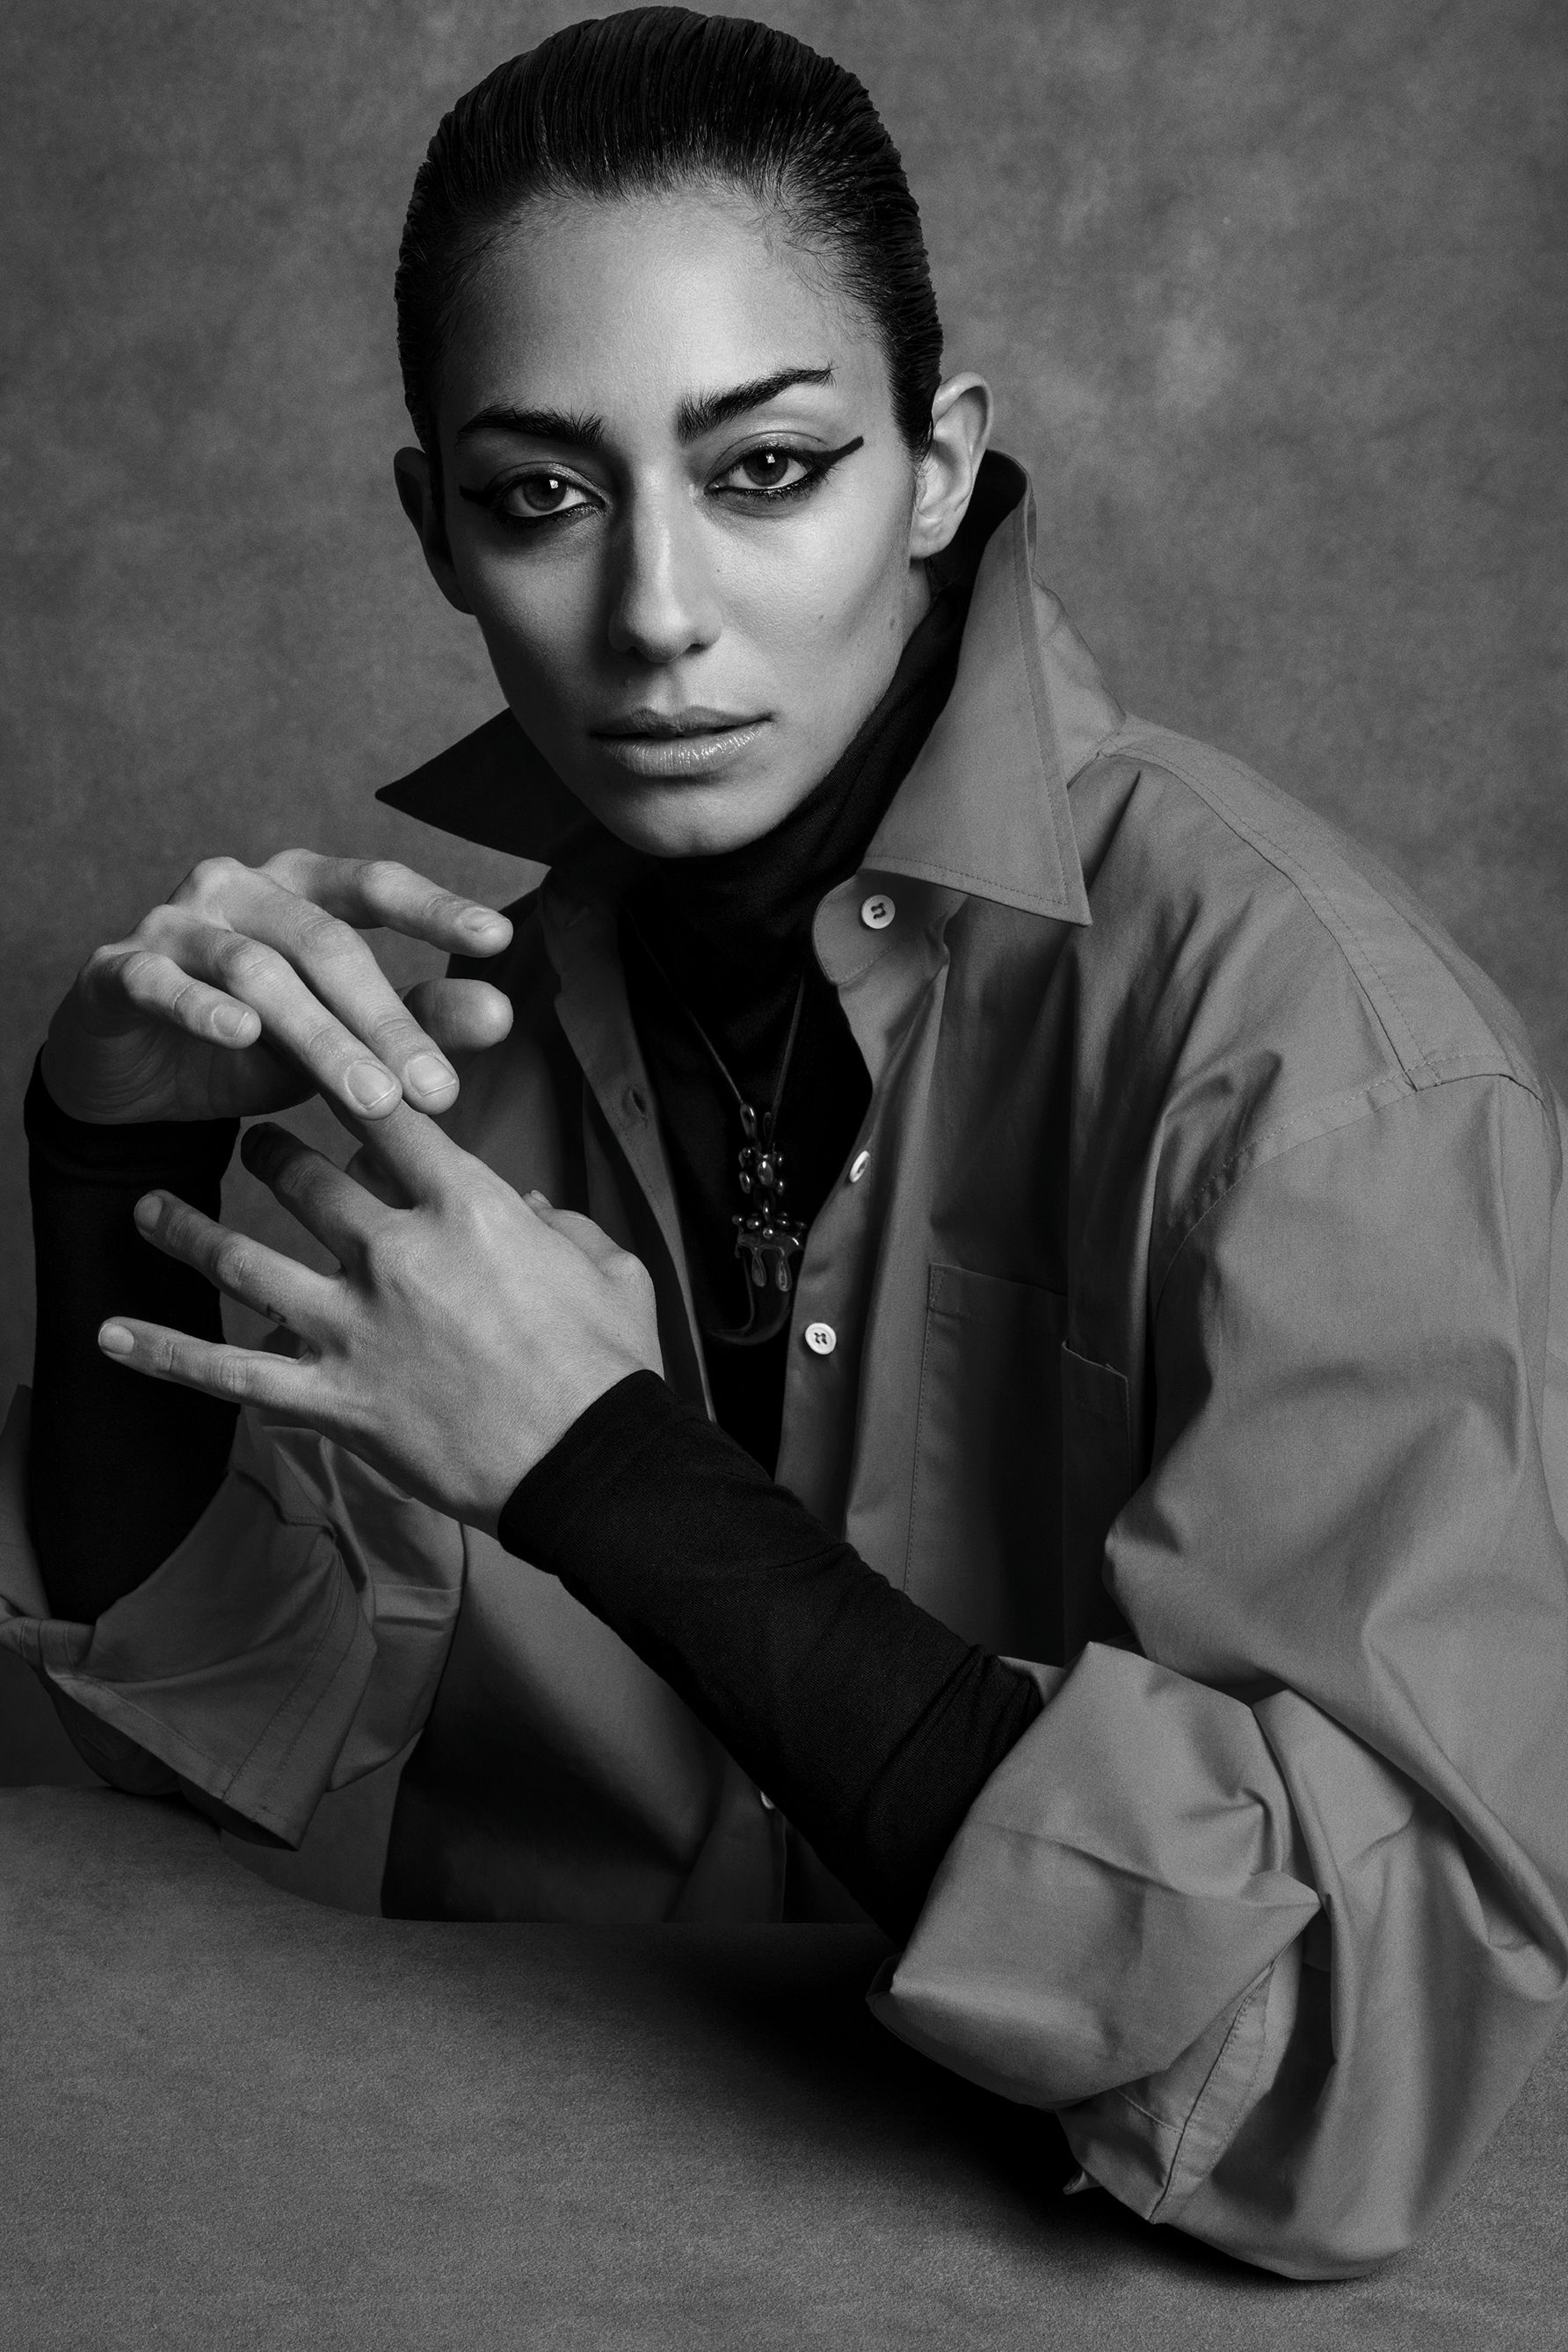 Rika Magazine issue no. 19 Conie Vallese photographed by Inez & Vinoodh